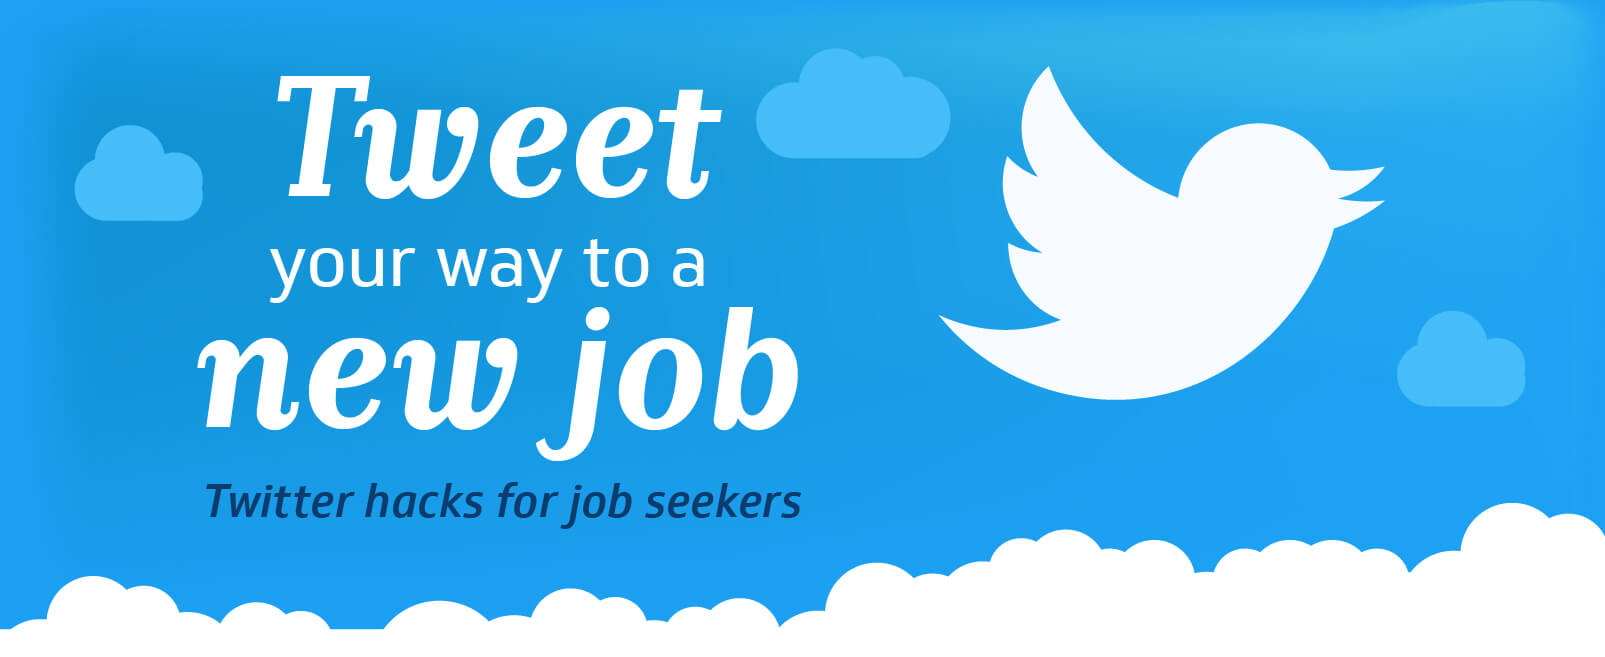 Twitter Hacks for Job Seekers | Kforce